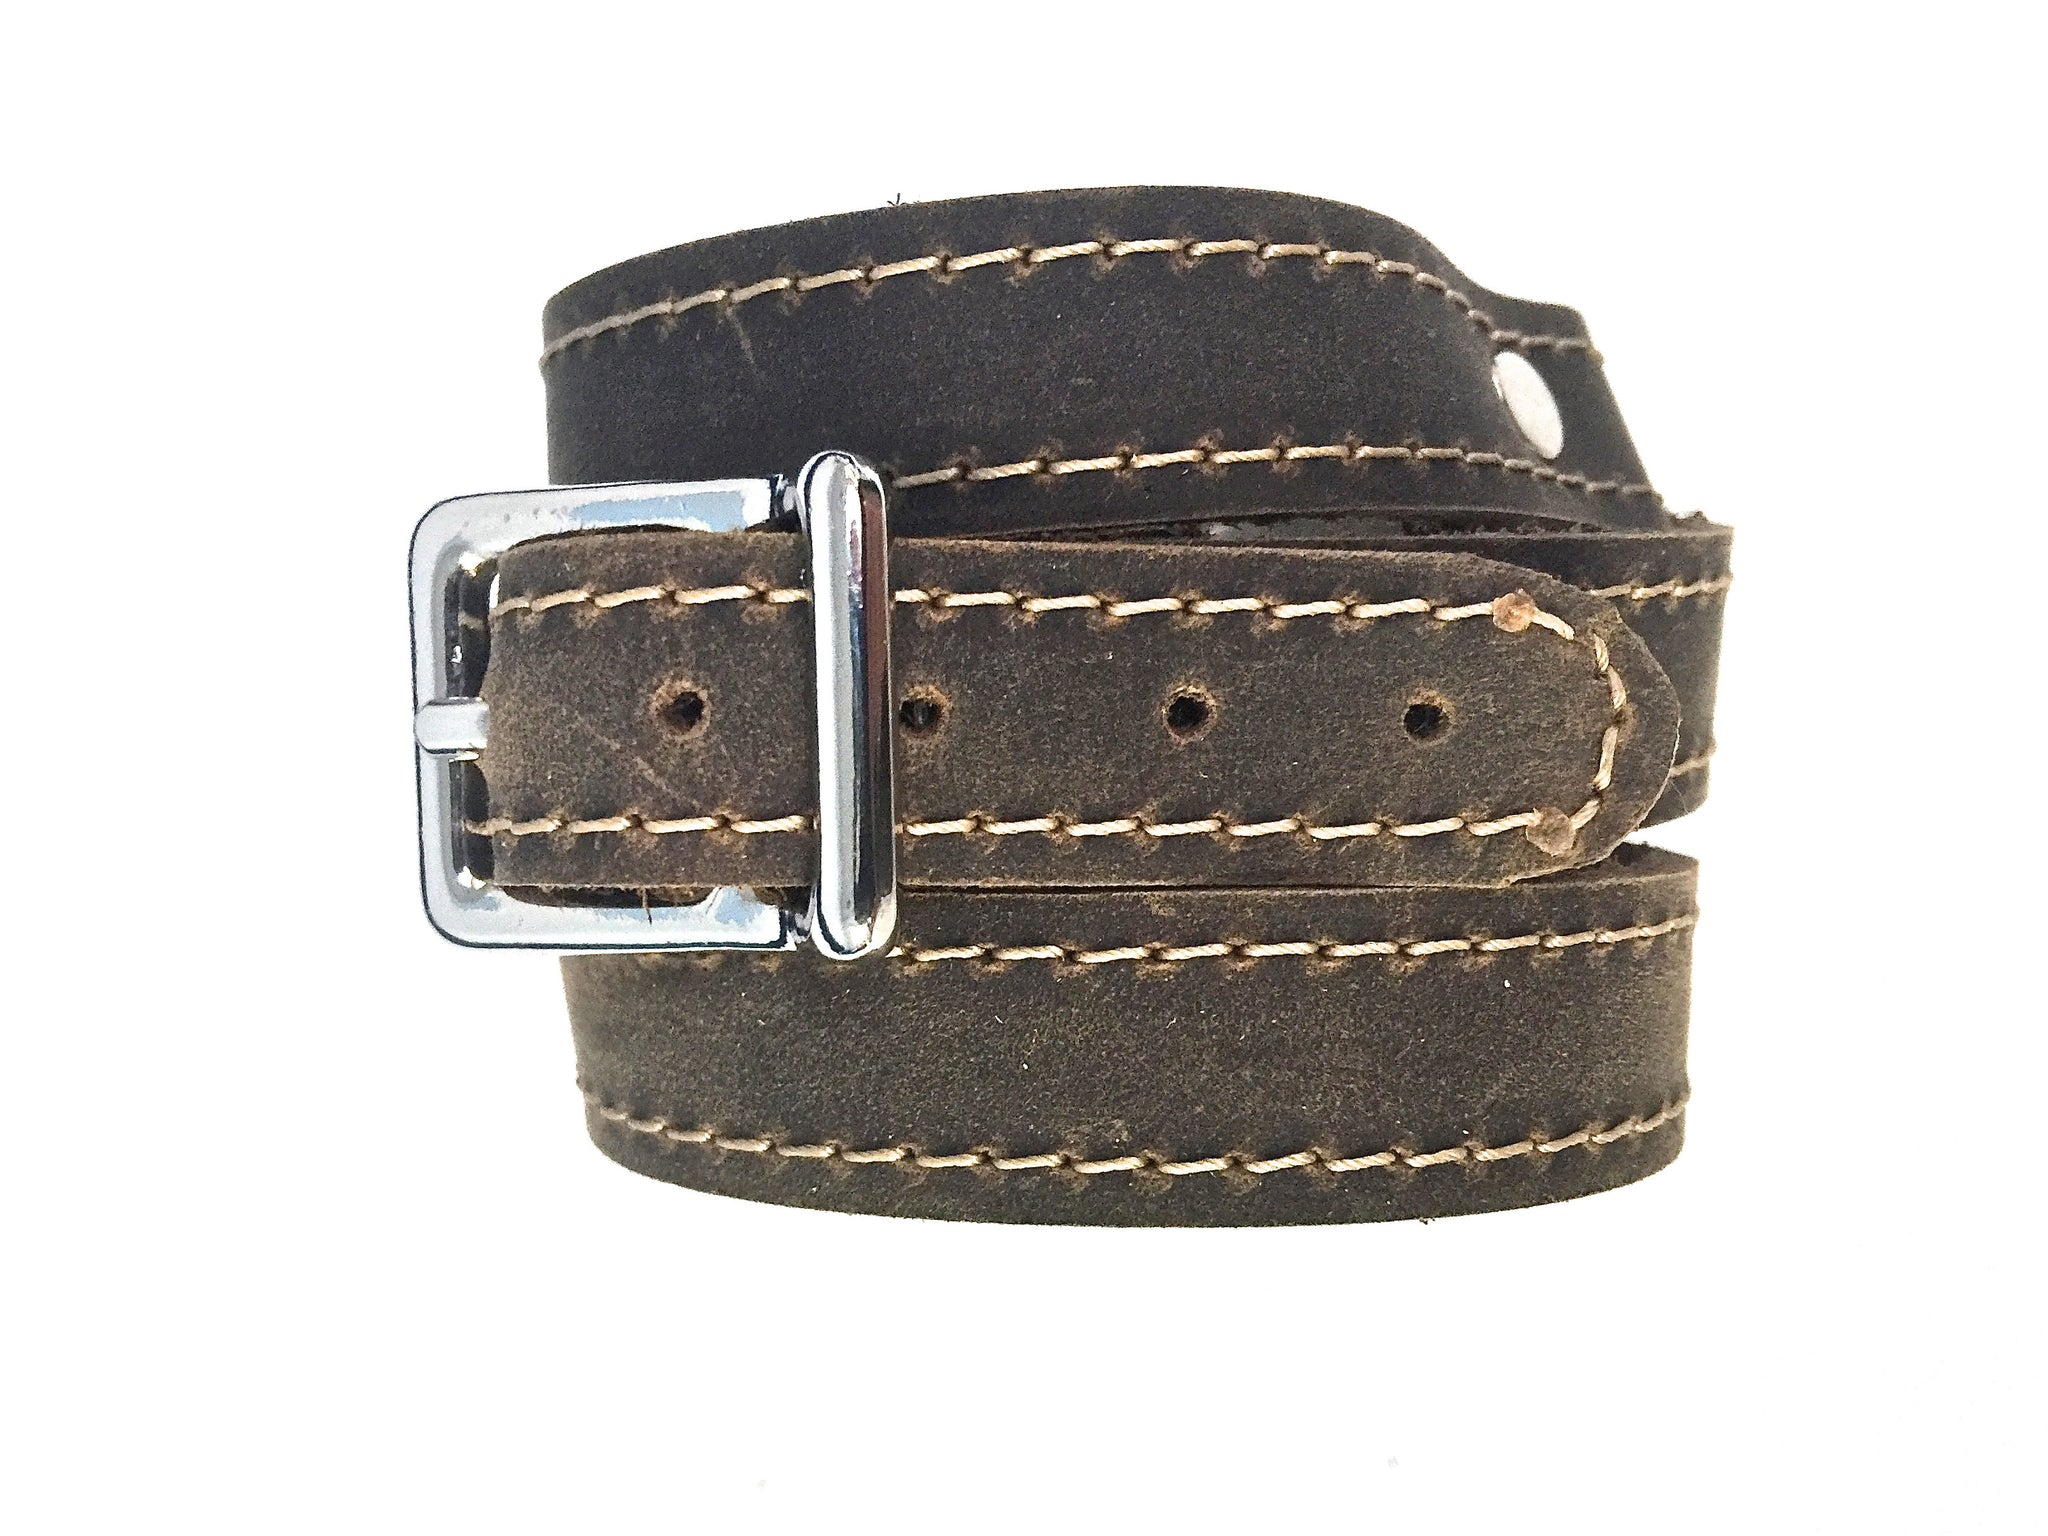 LEATHER WRAPAROUND WITH METAL LINK INLAID WITH MATCHING PIECE OF LEATHER